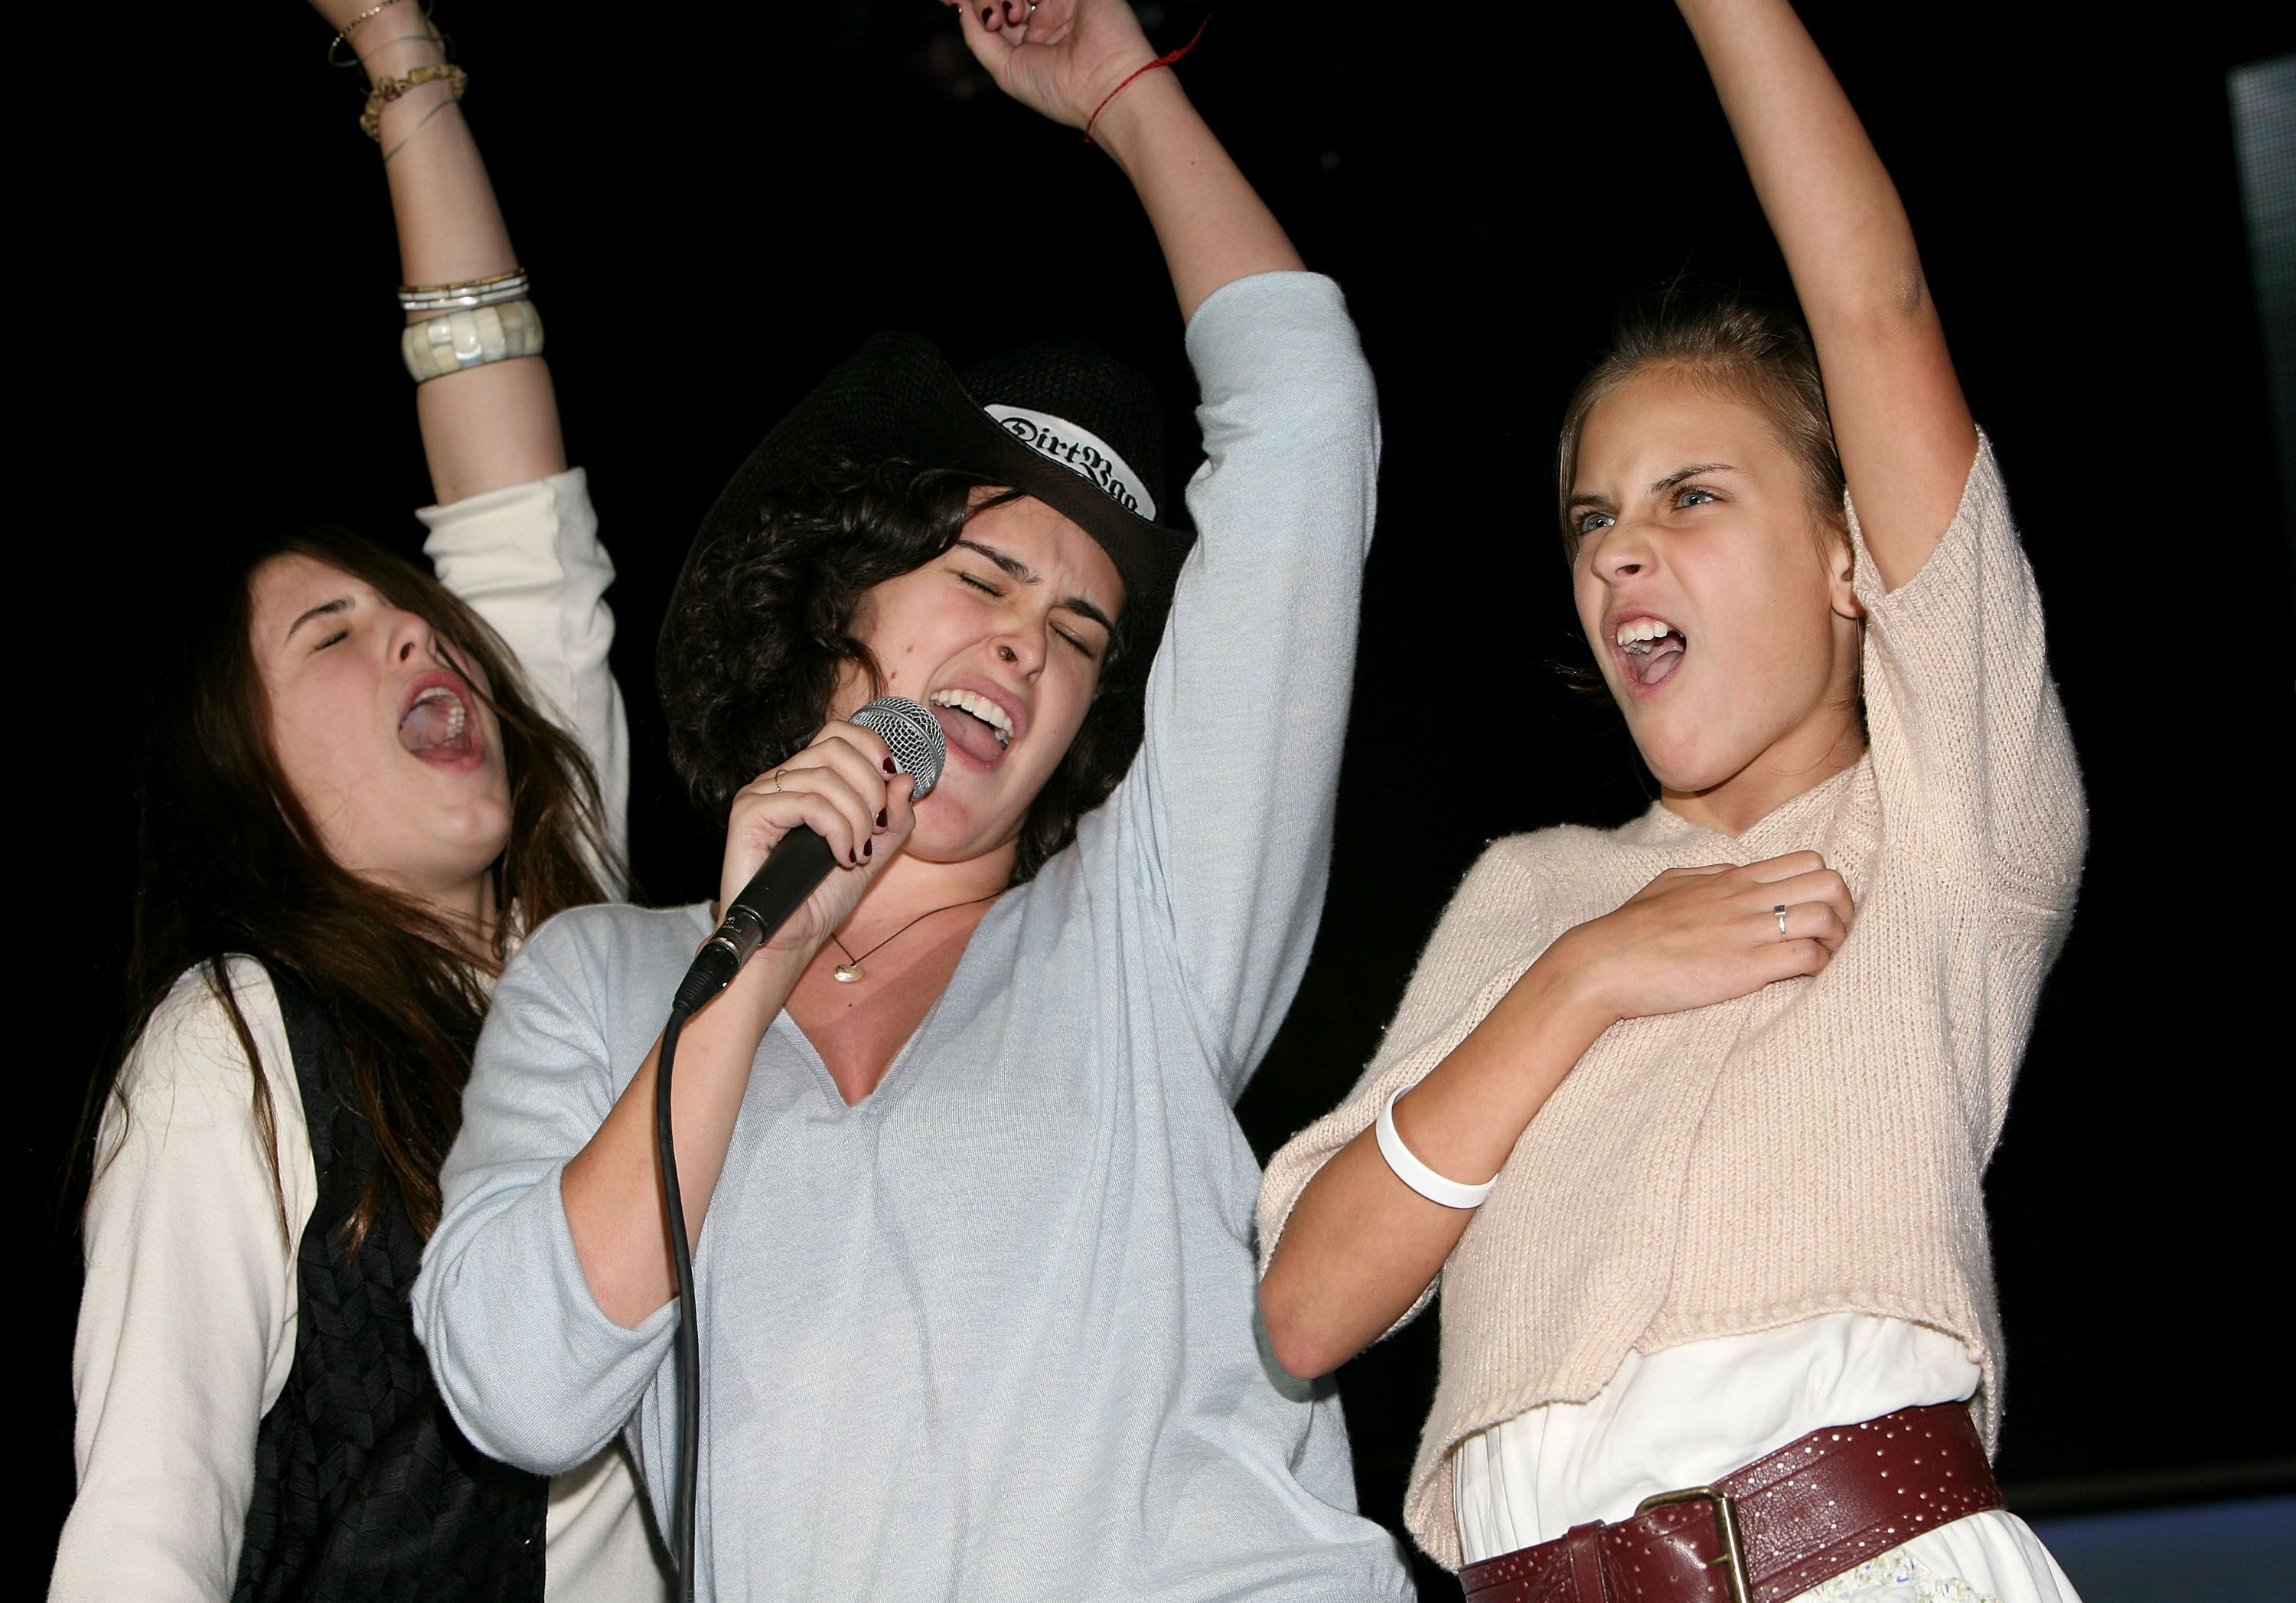 Sisters Scout Willis, Rumer Willis and Tallulah Willis perform onstage during Playstation Bandtogether, a benefit presented by Sony and the Bruce Willis Foundation held at Smashbox Studios on December 10, 2005 in Culver City, California | Photo: Getty Images